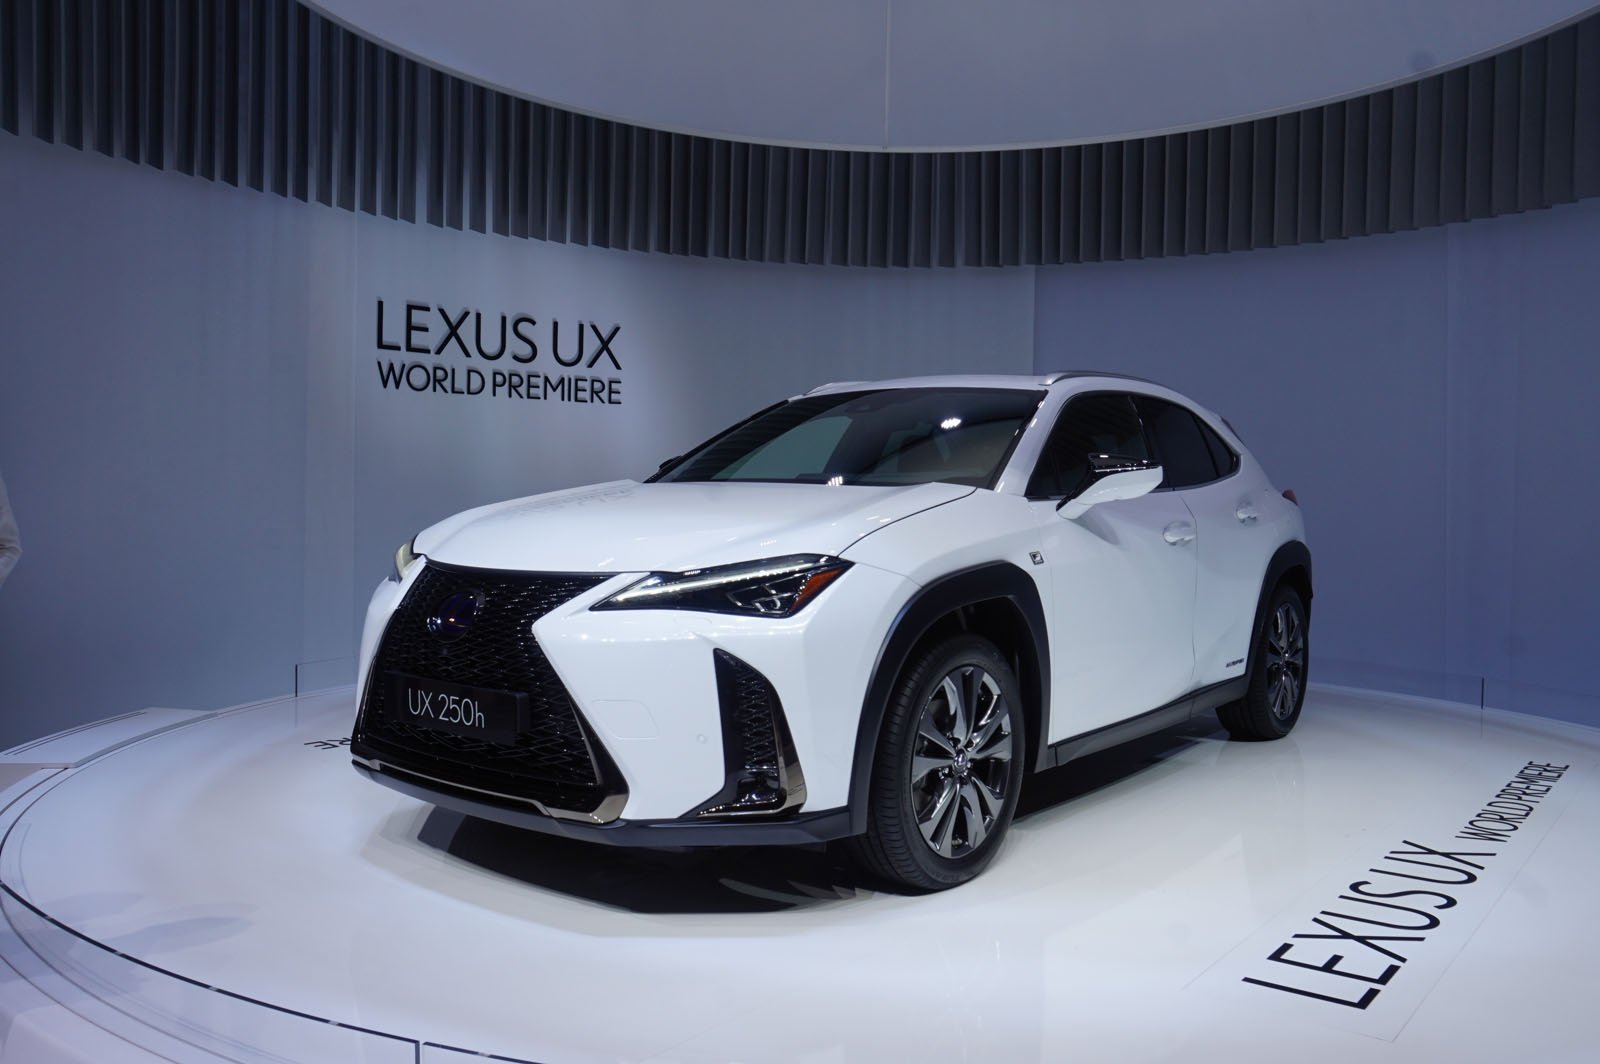 Lexus Is 2019. The Lexus Is 2019 - Endurotours.co